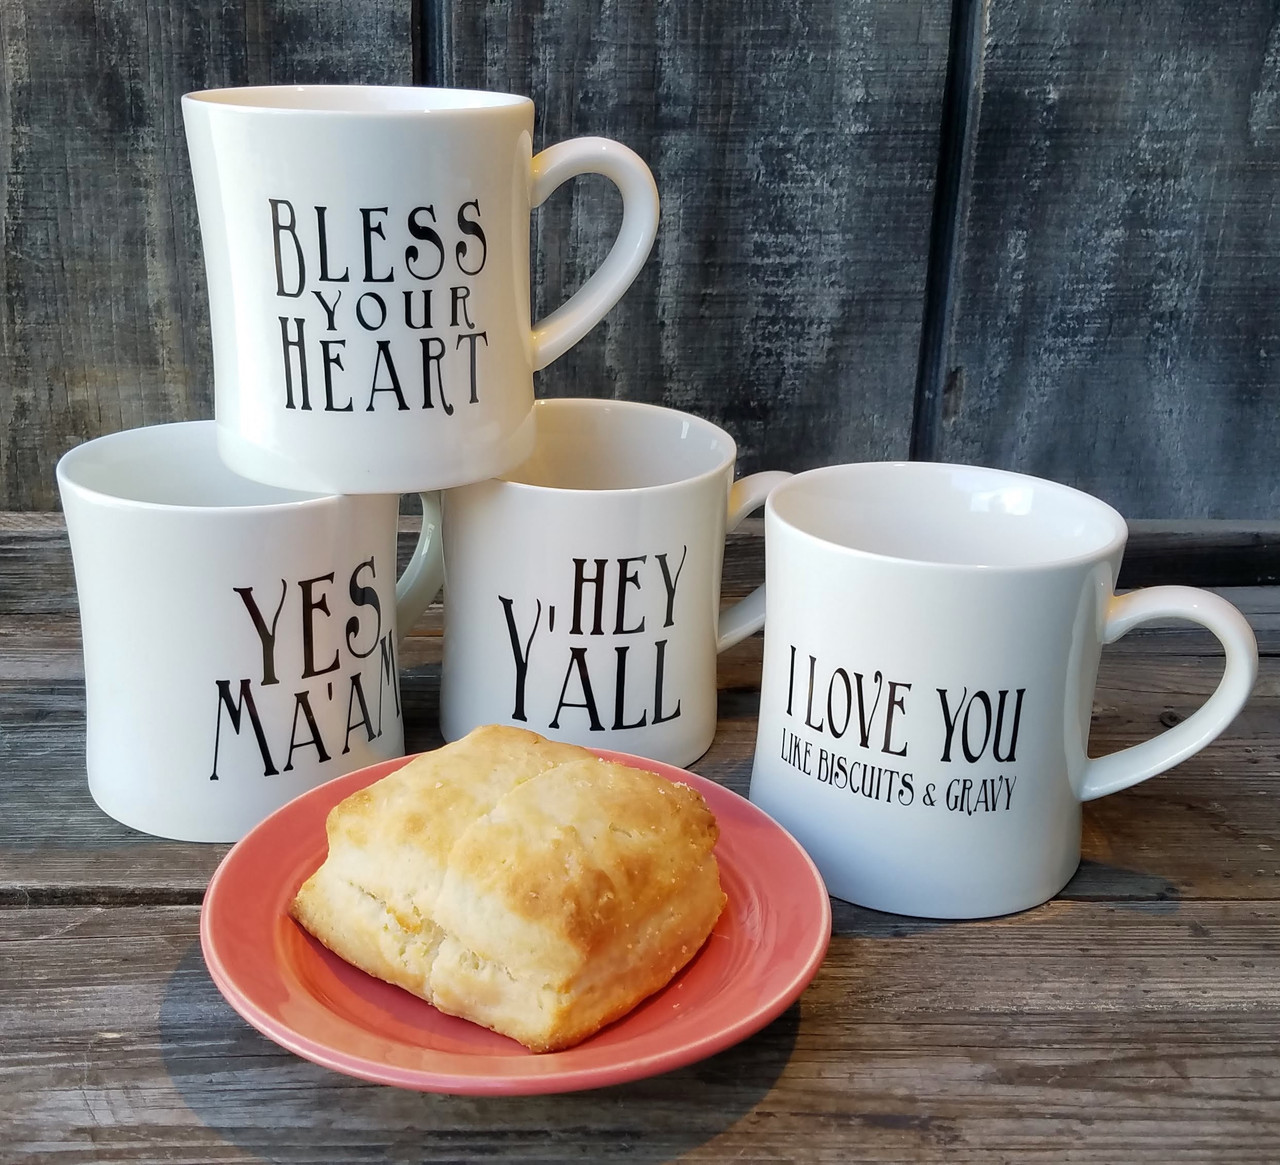 12 oz. Stoneware Mug with Southern Saying